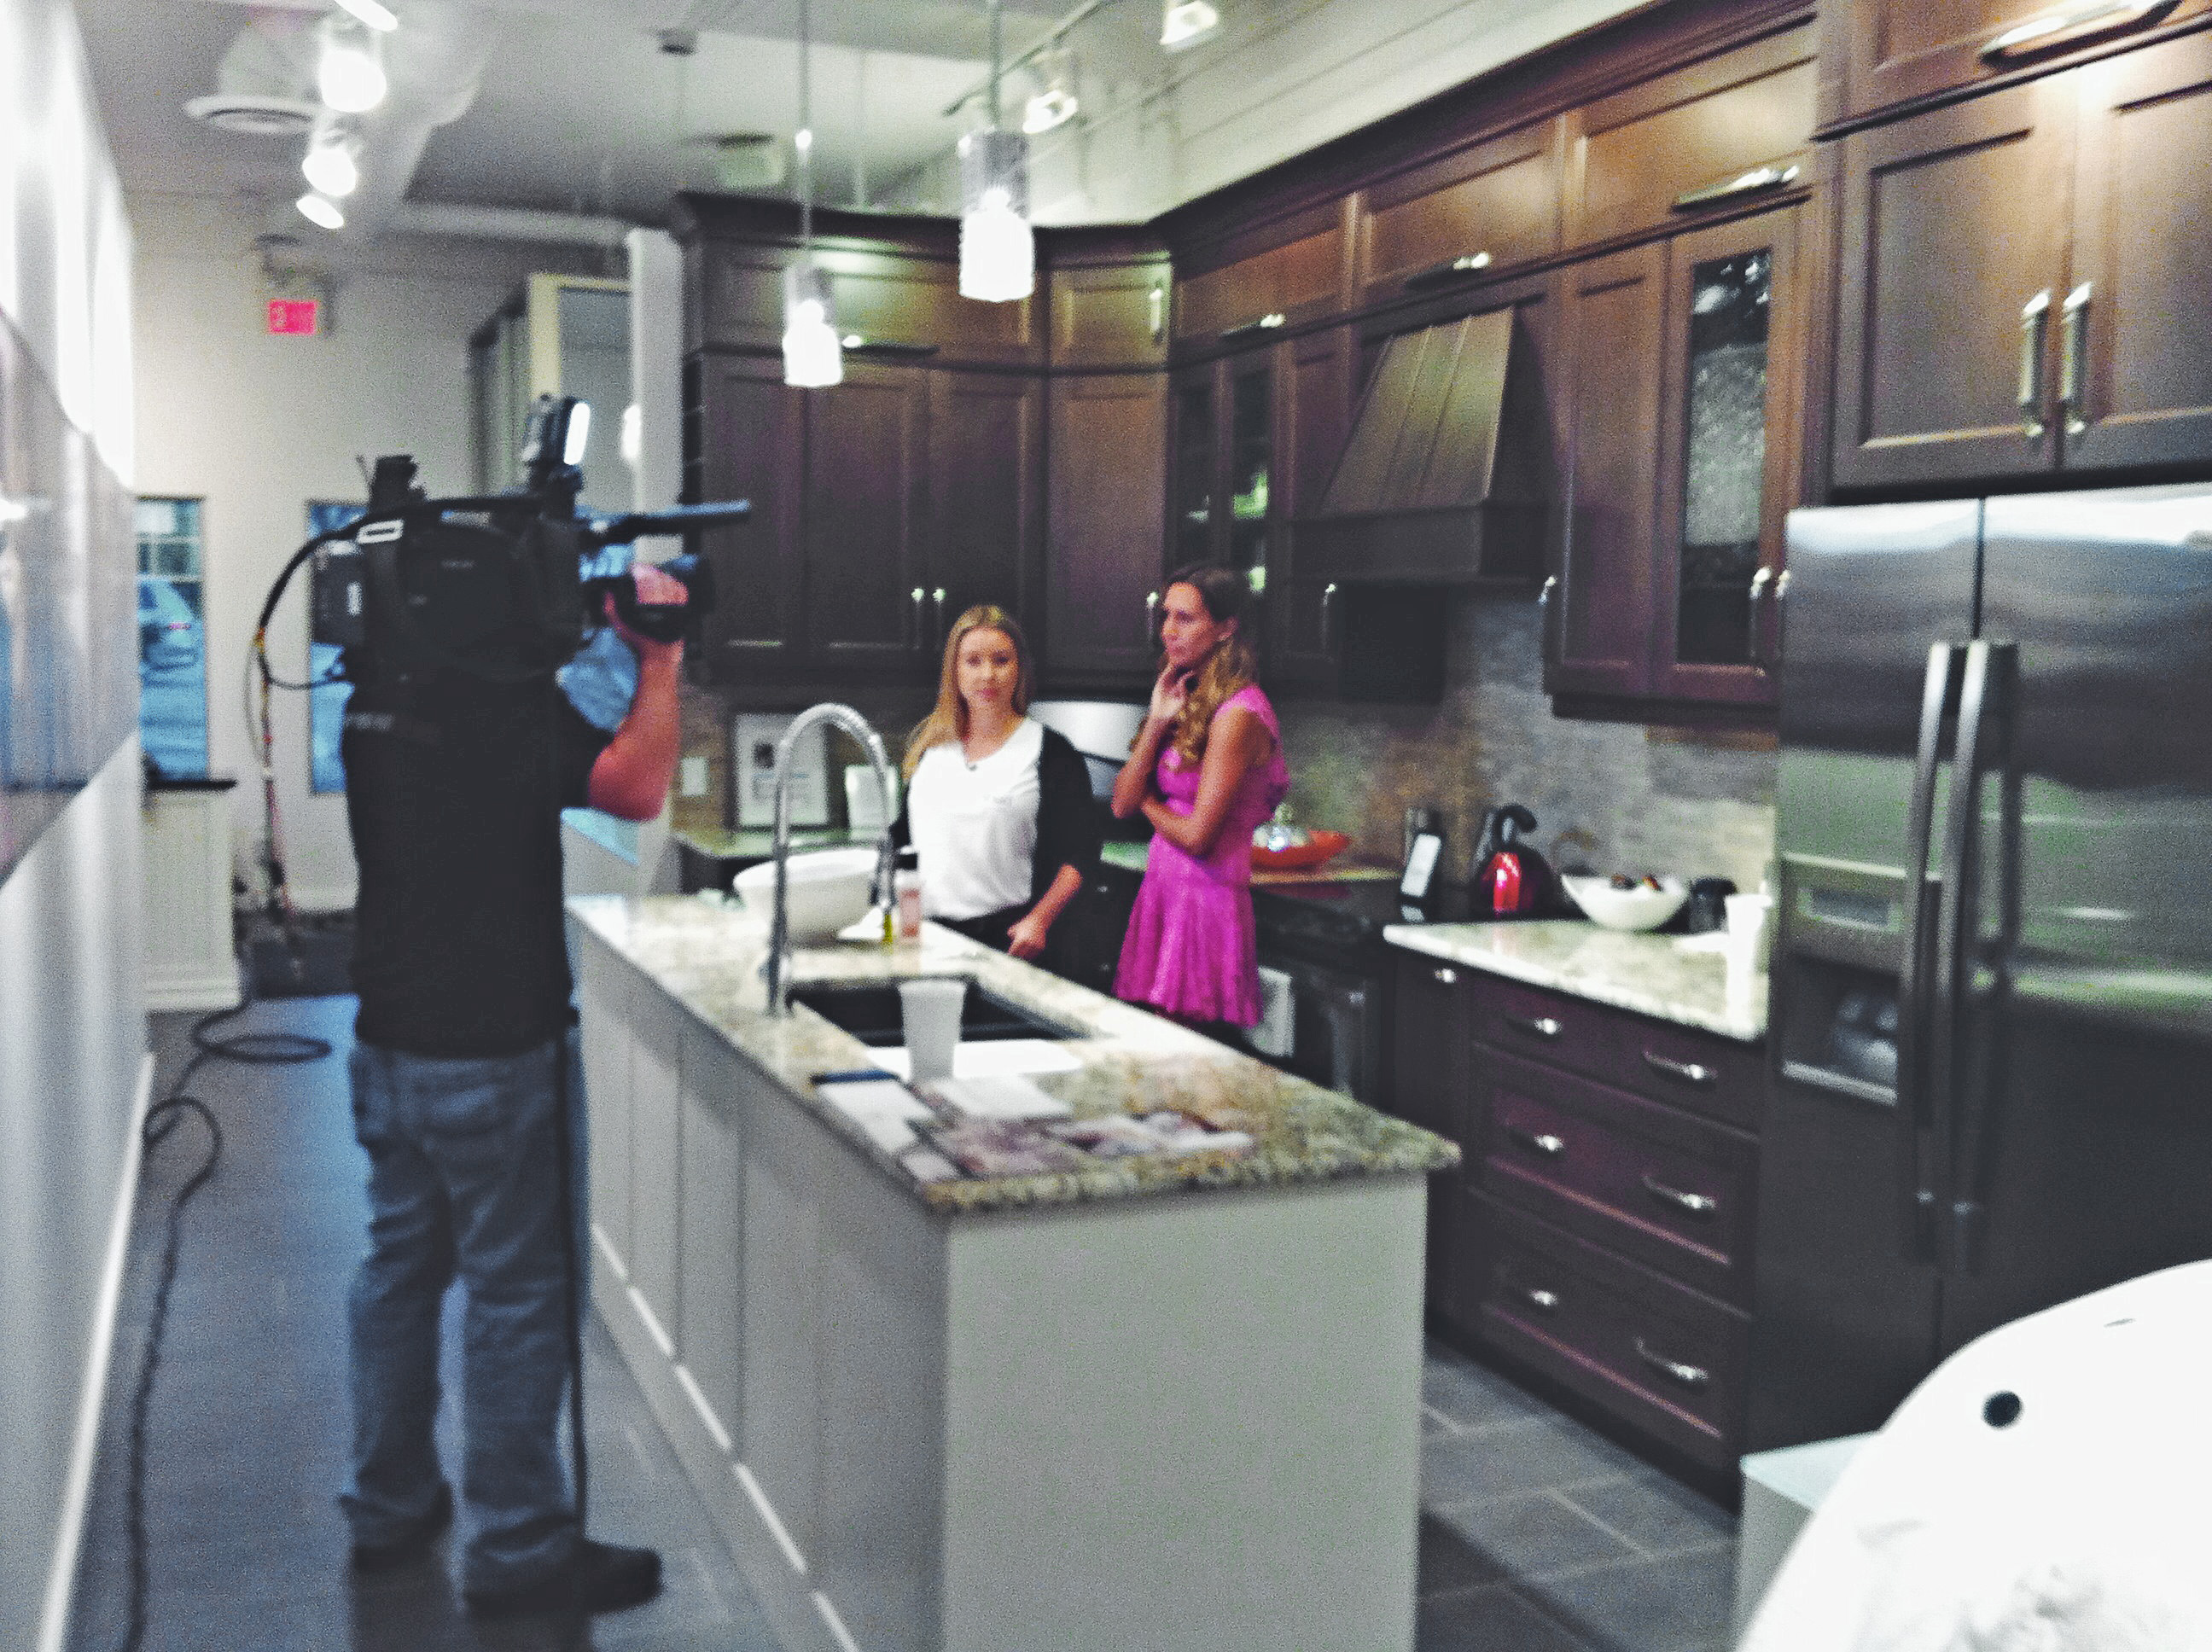 <h1>ON LOCATION FEATURE: Breakfast Television Calgary - Beyond Nourished</h1>